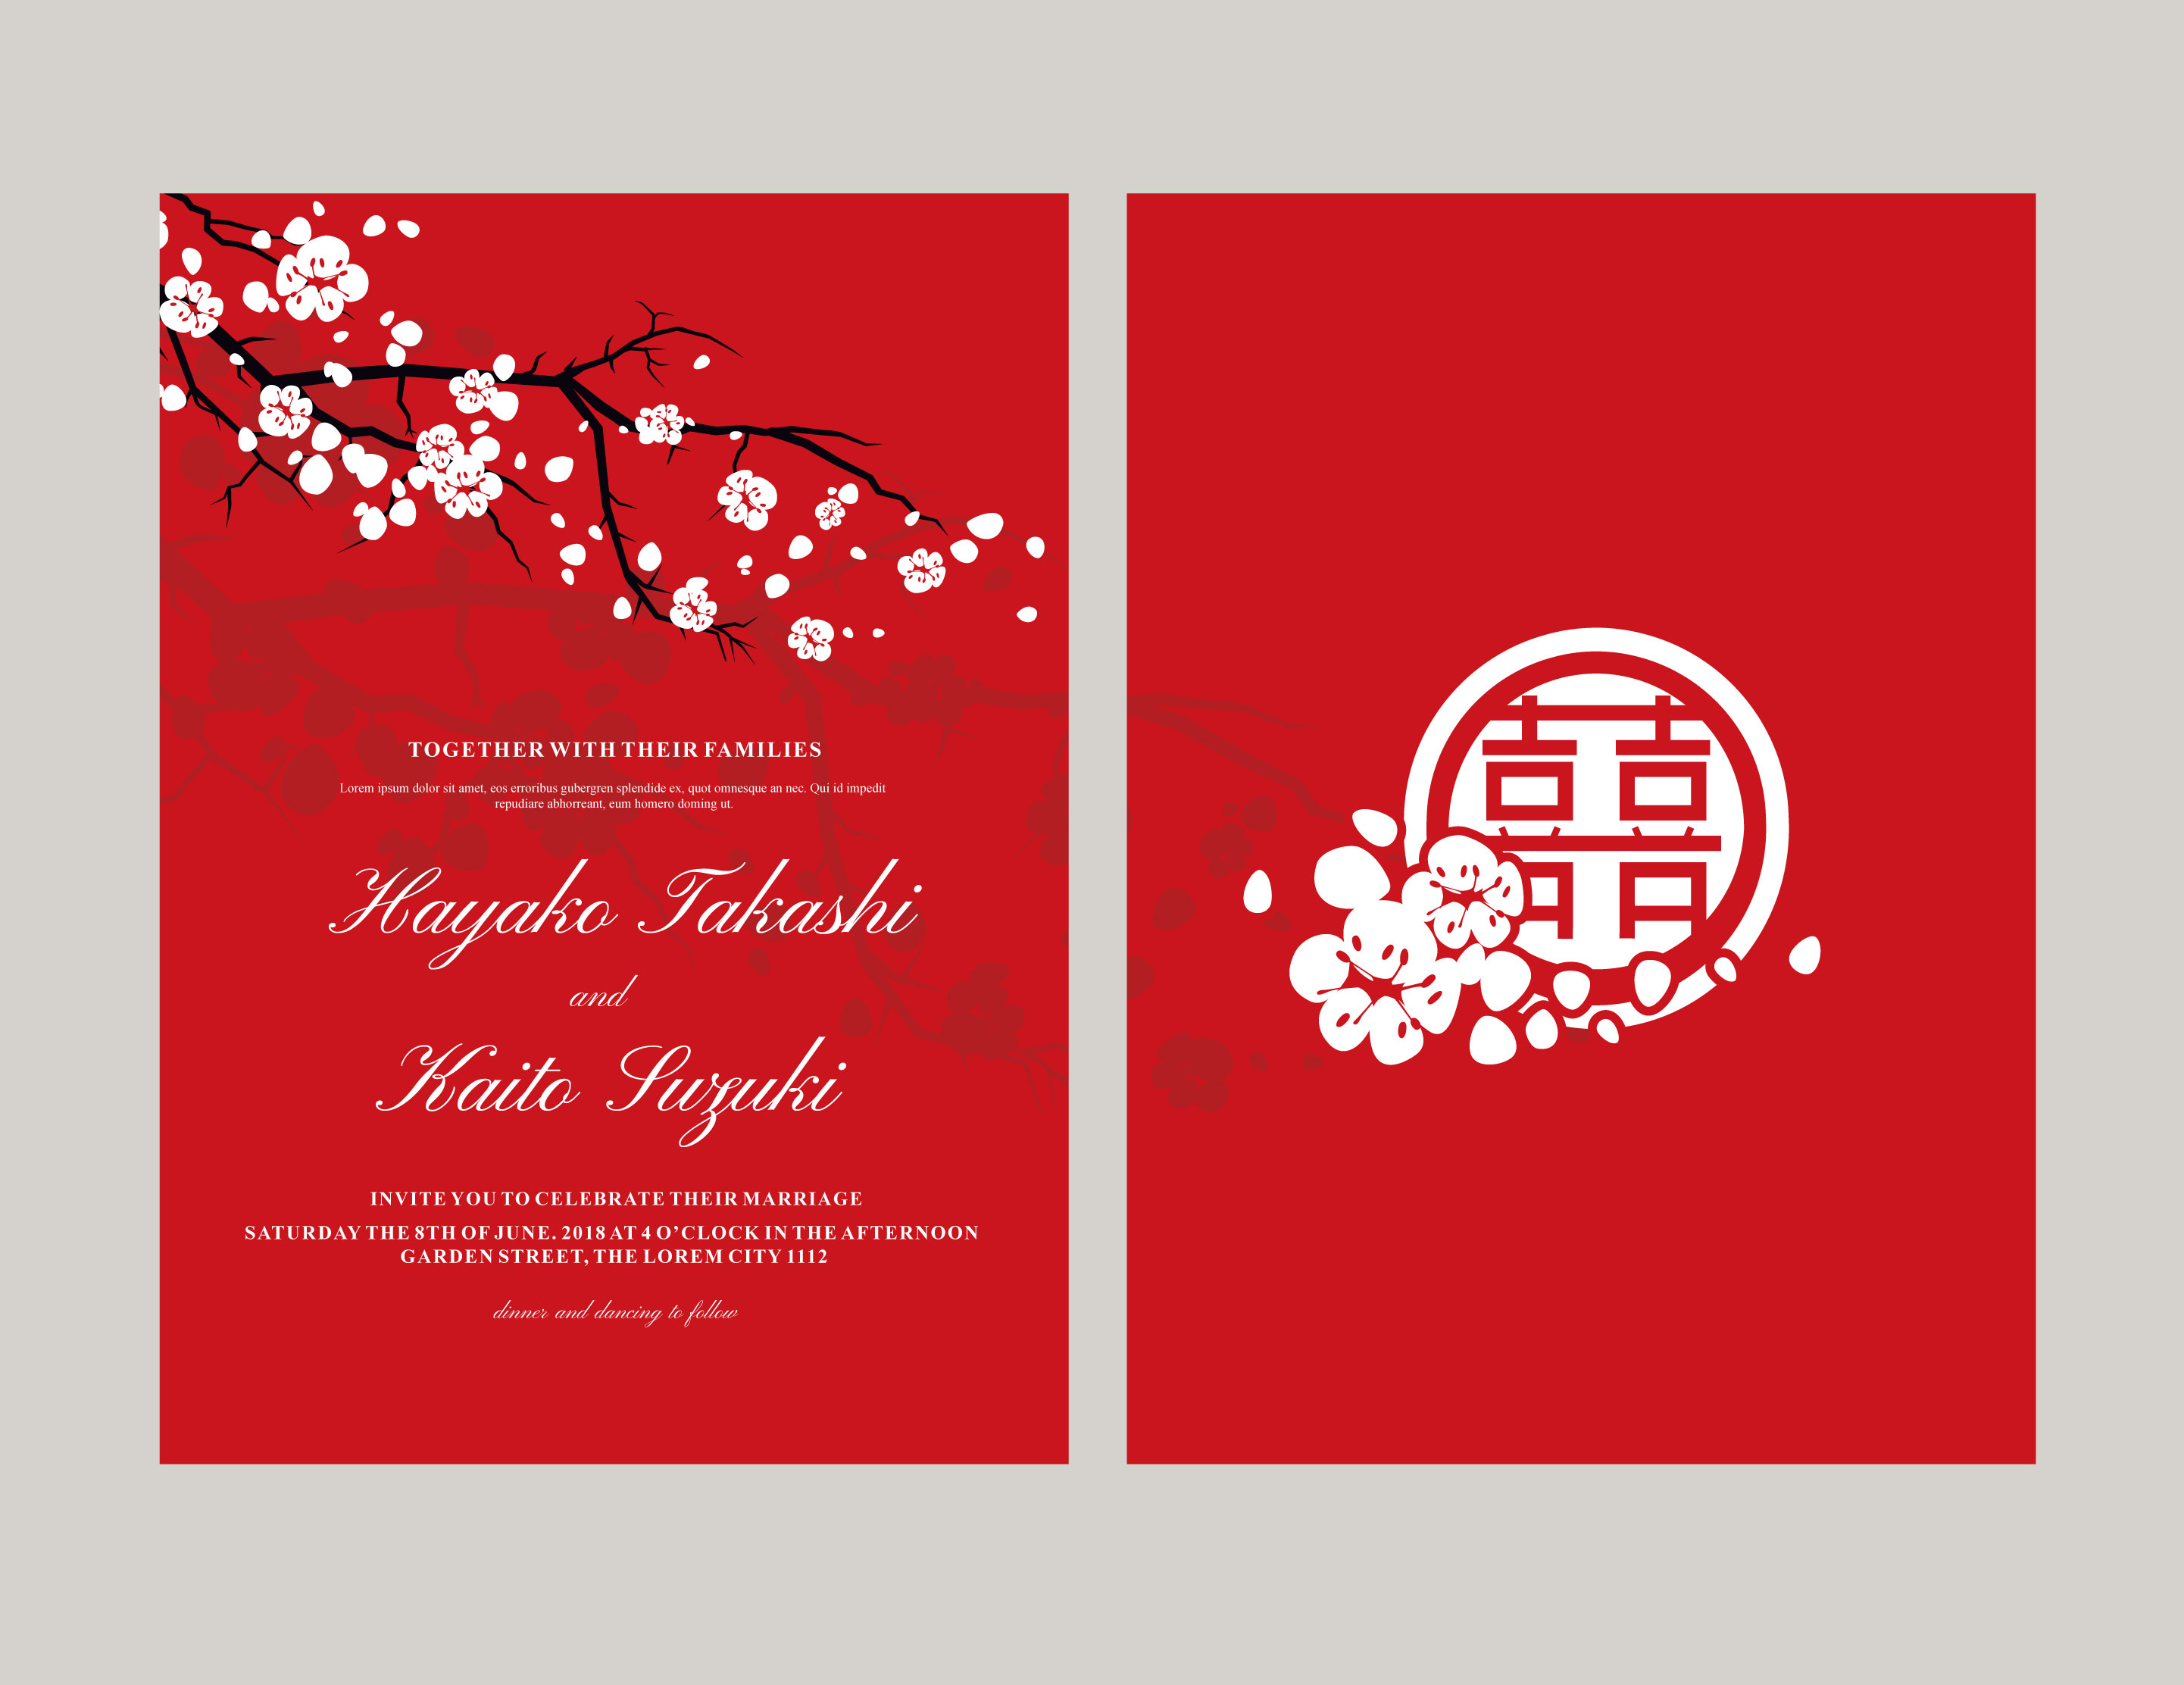 Japanese style invitation vector - Download Free Vector Art, Stock ...